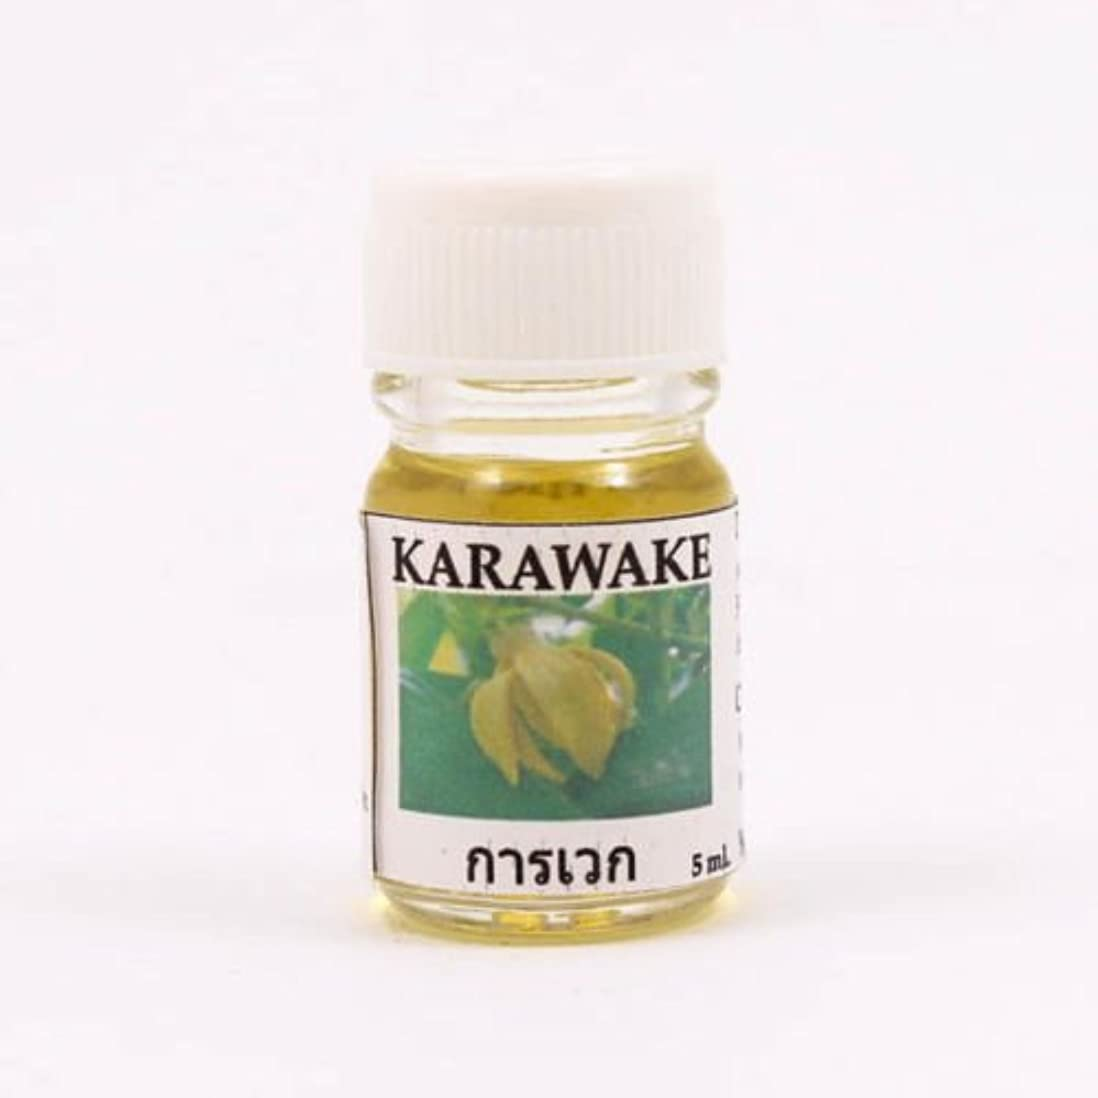 宿命曲ピクニックをする6X Karawake Aroma Fragrance Essential Oil 5ML. cc Diffuser Burner Therapy